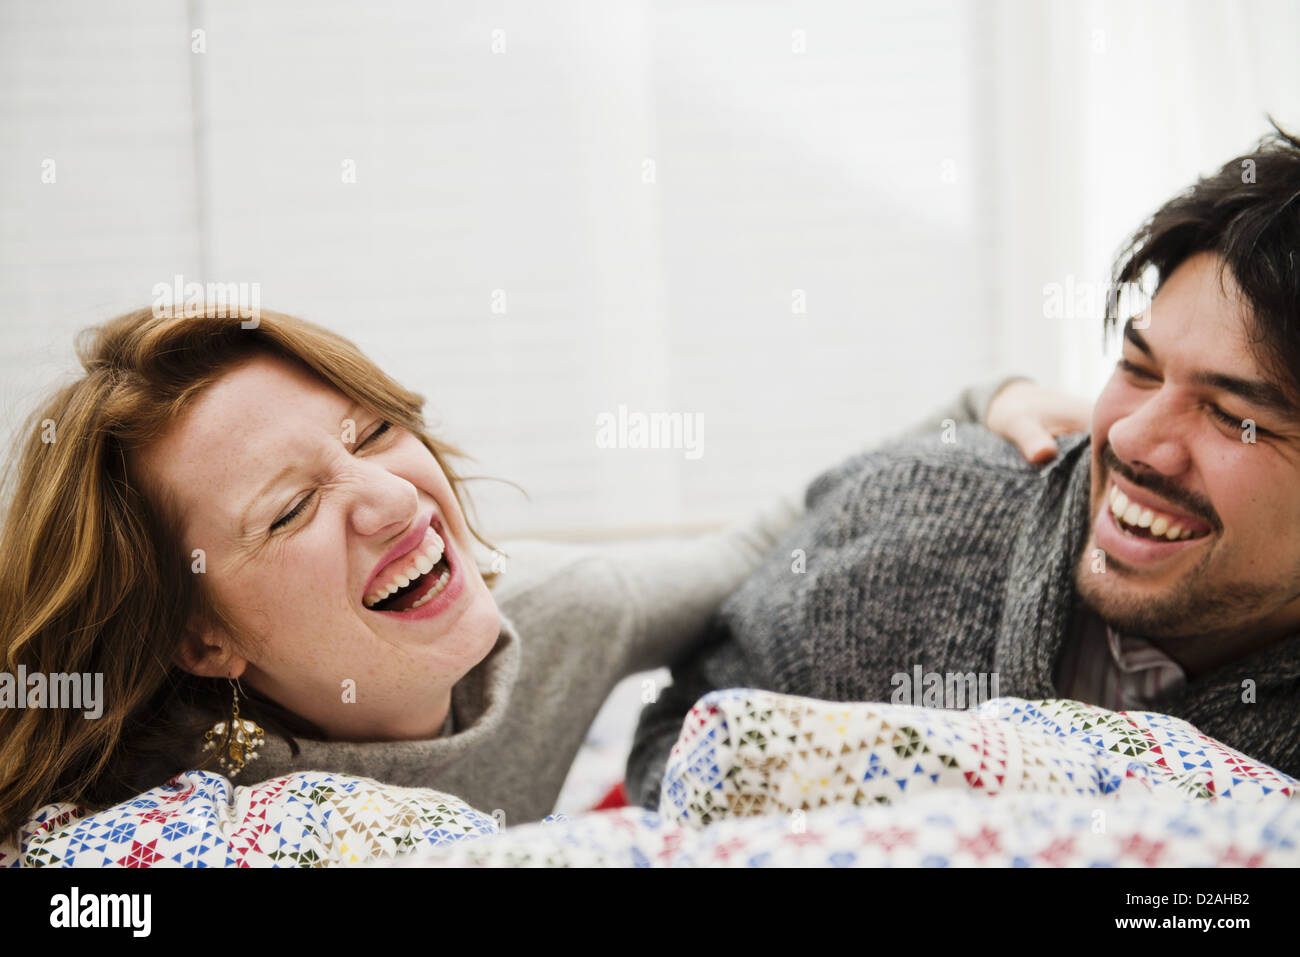 Couple laughing together on bed - Stock Image